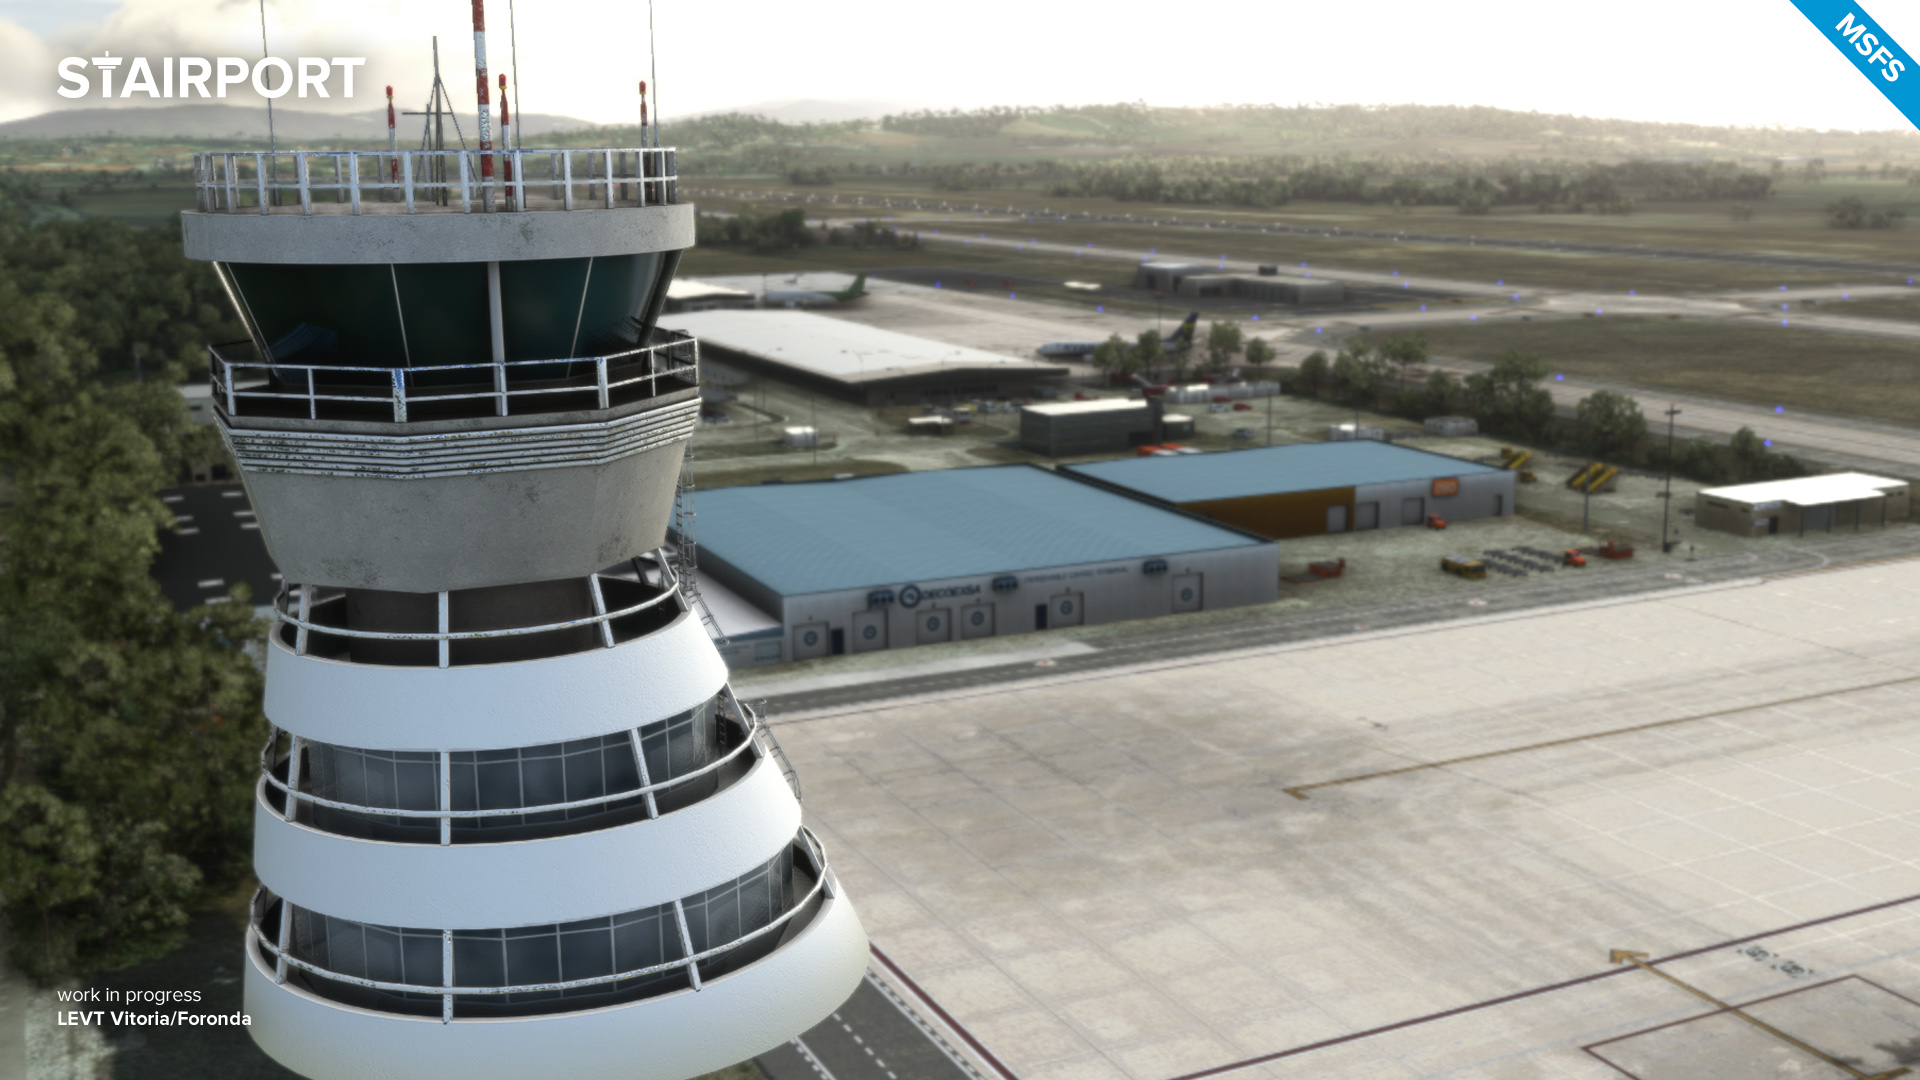 Stairport Sceneries Previews Vitoria Airport for MSFS